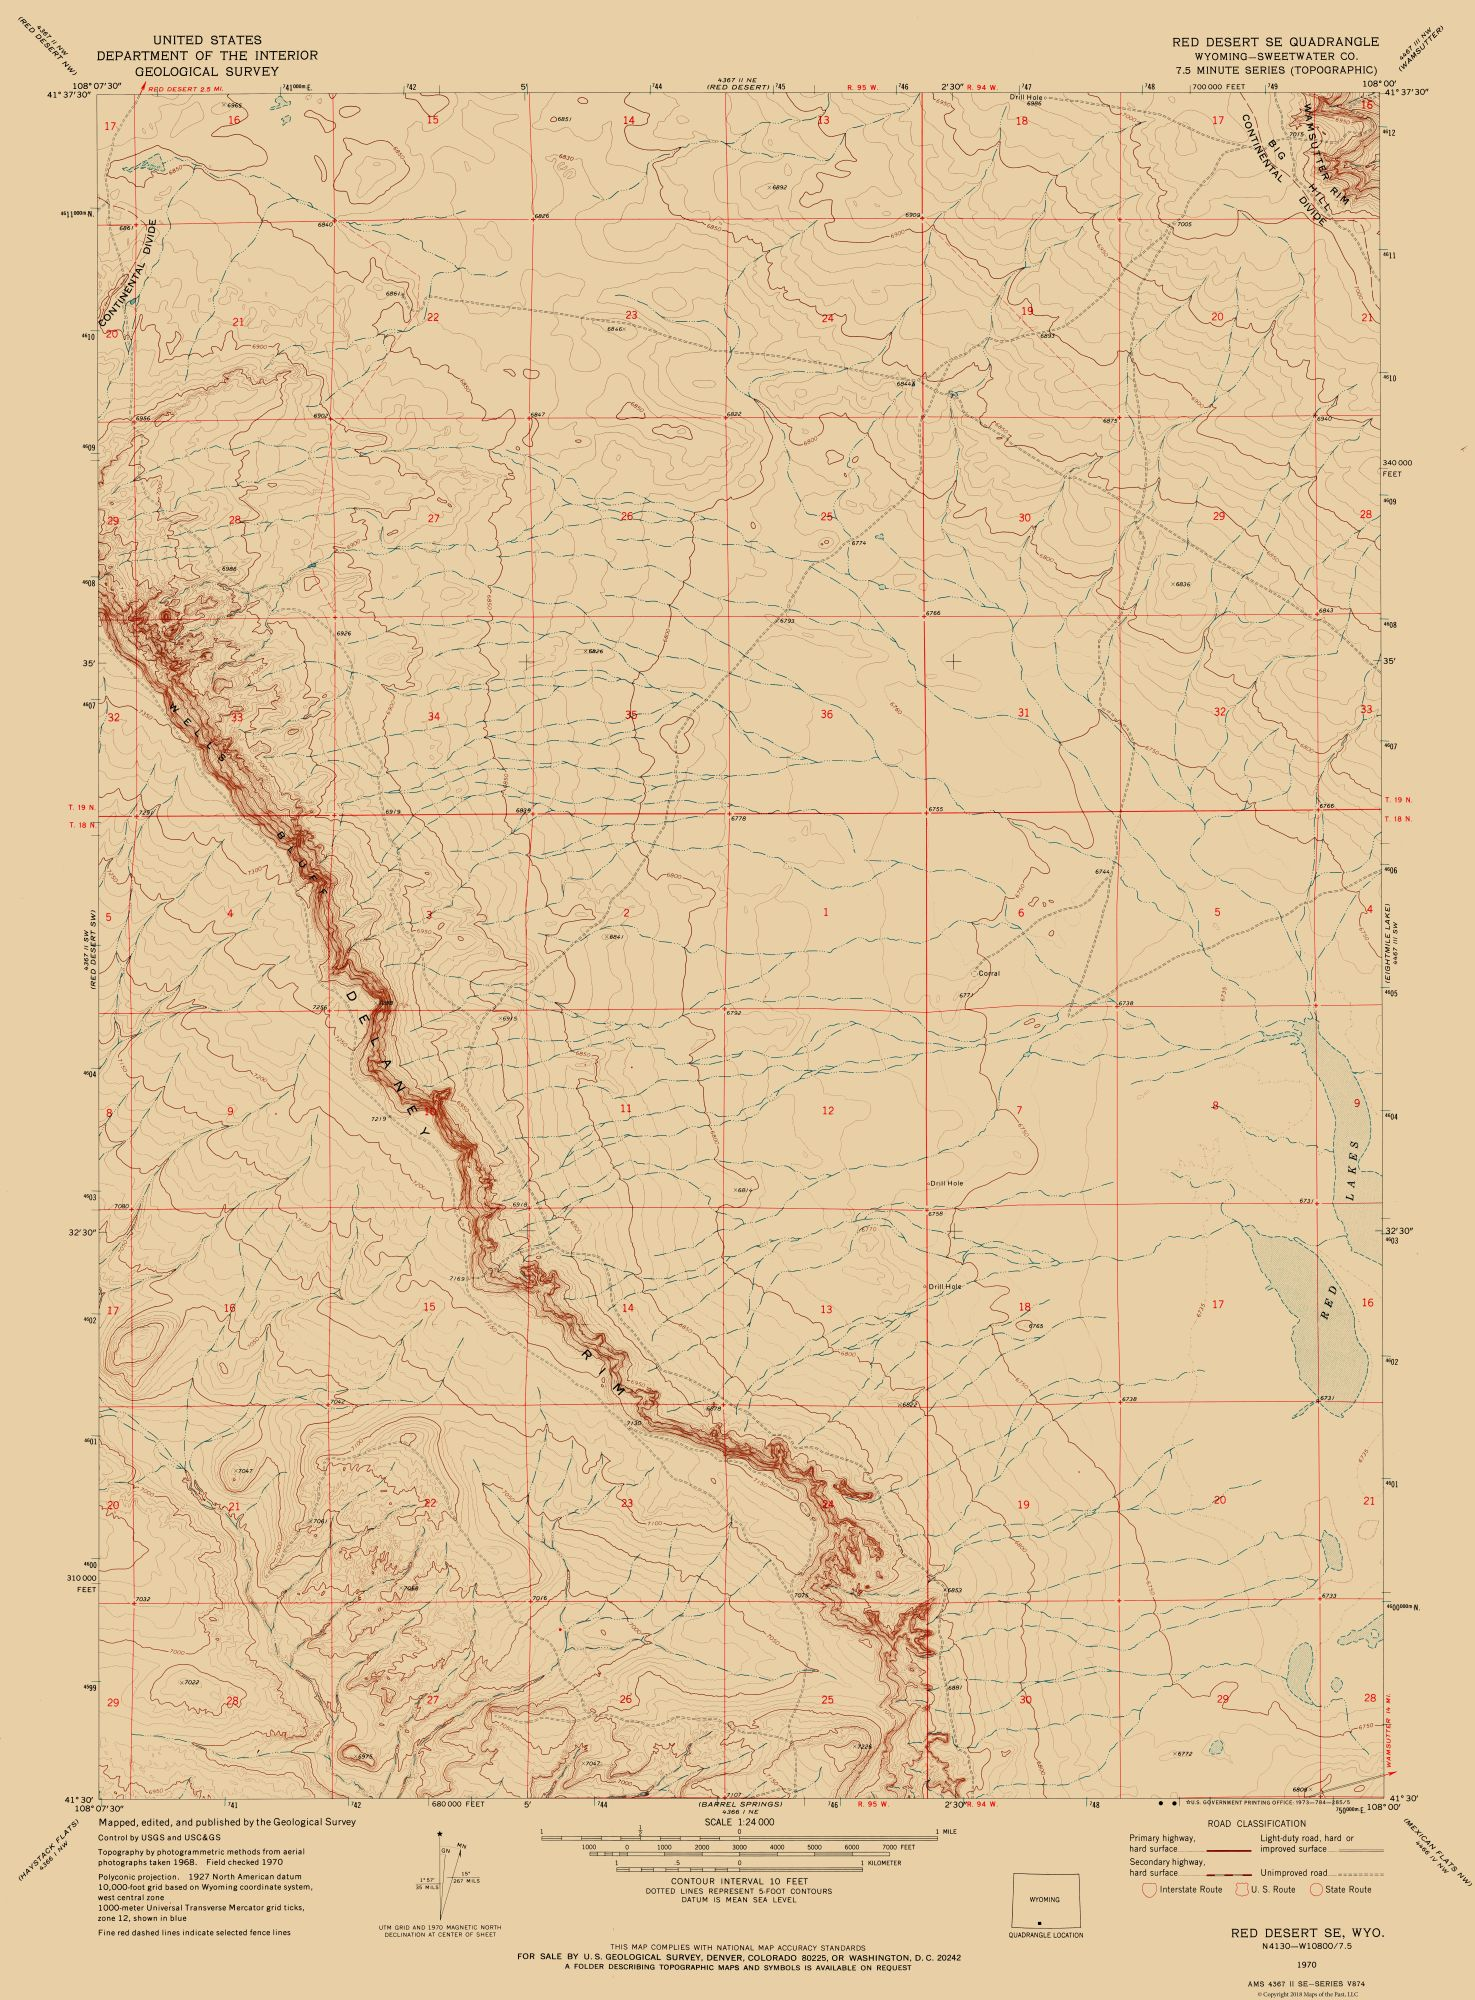 Historical Topographical Maps South East Red Desert Wyoming Quad